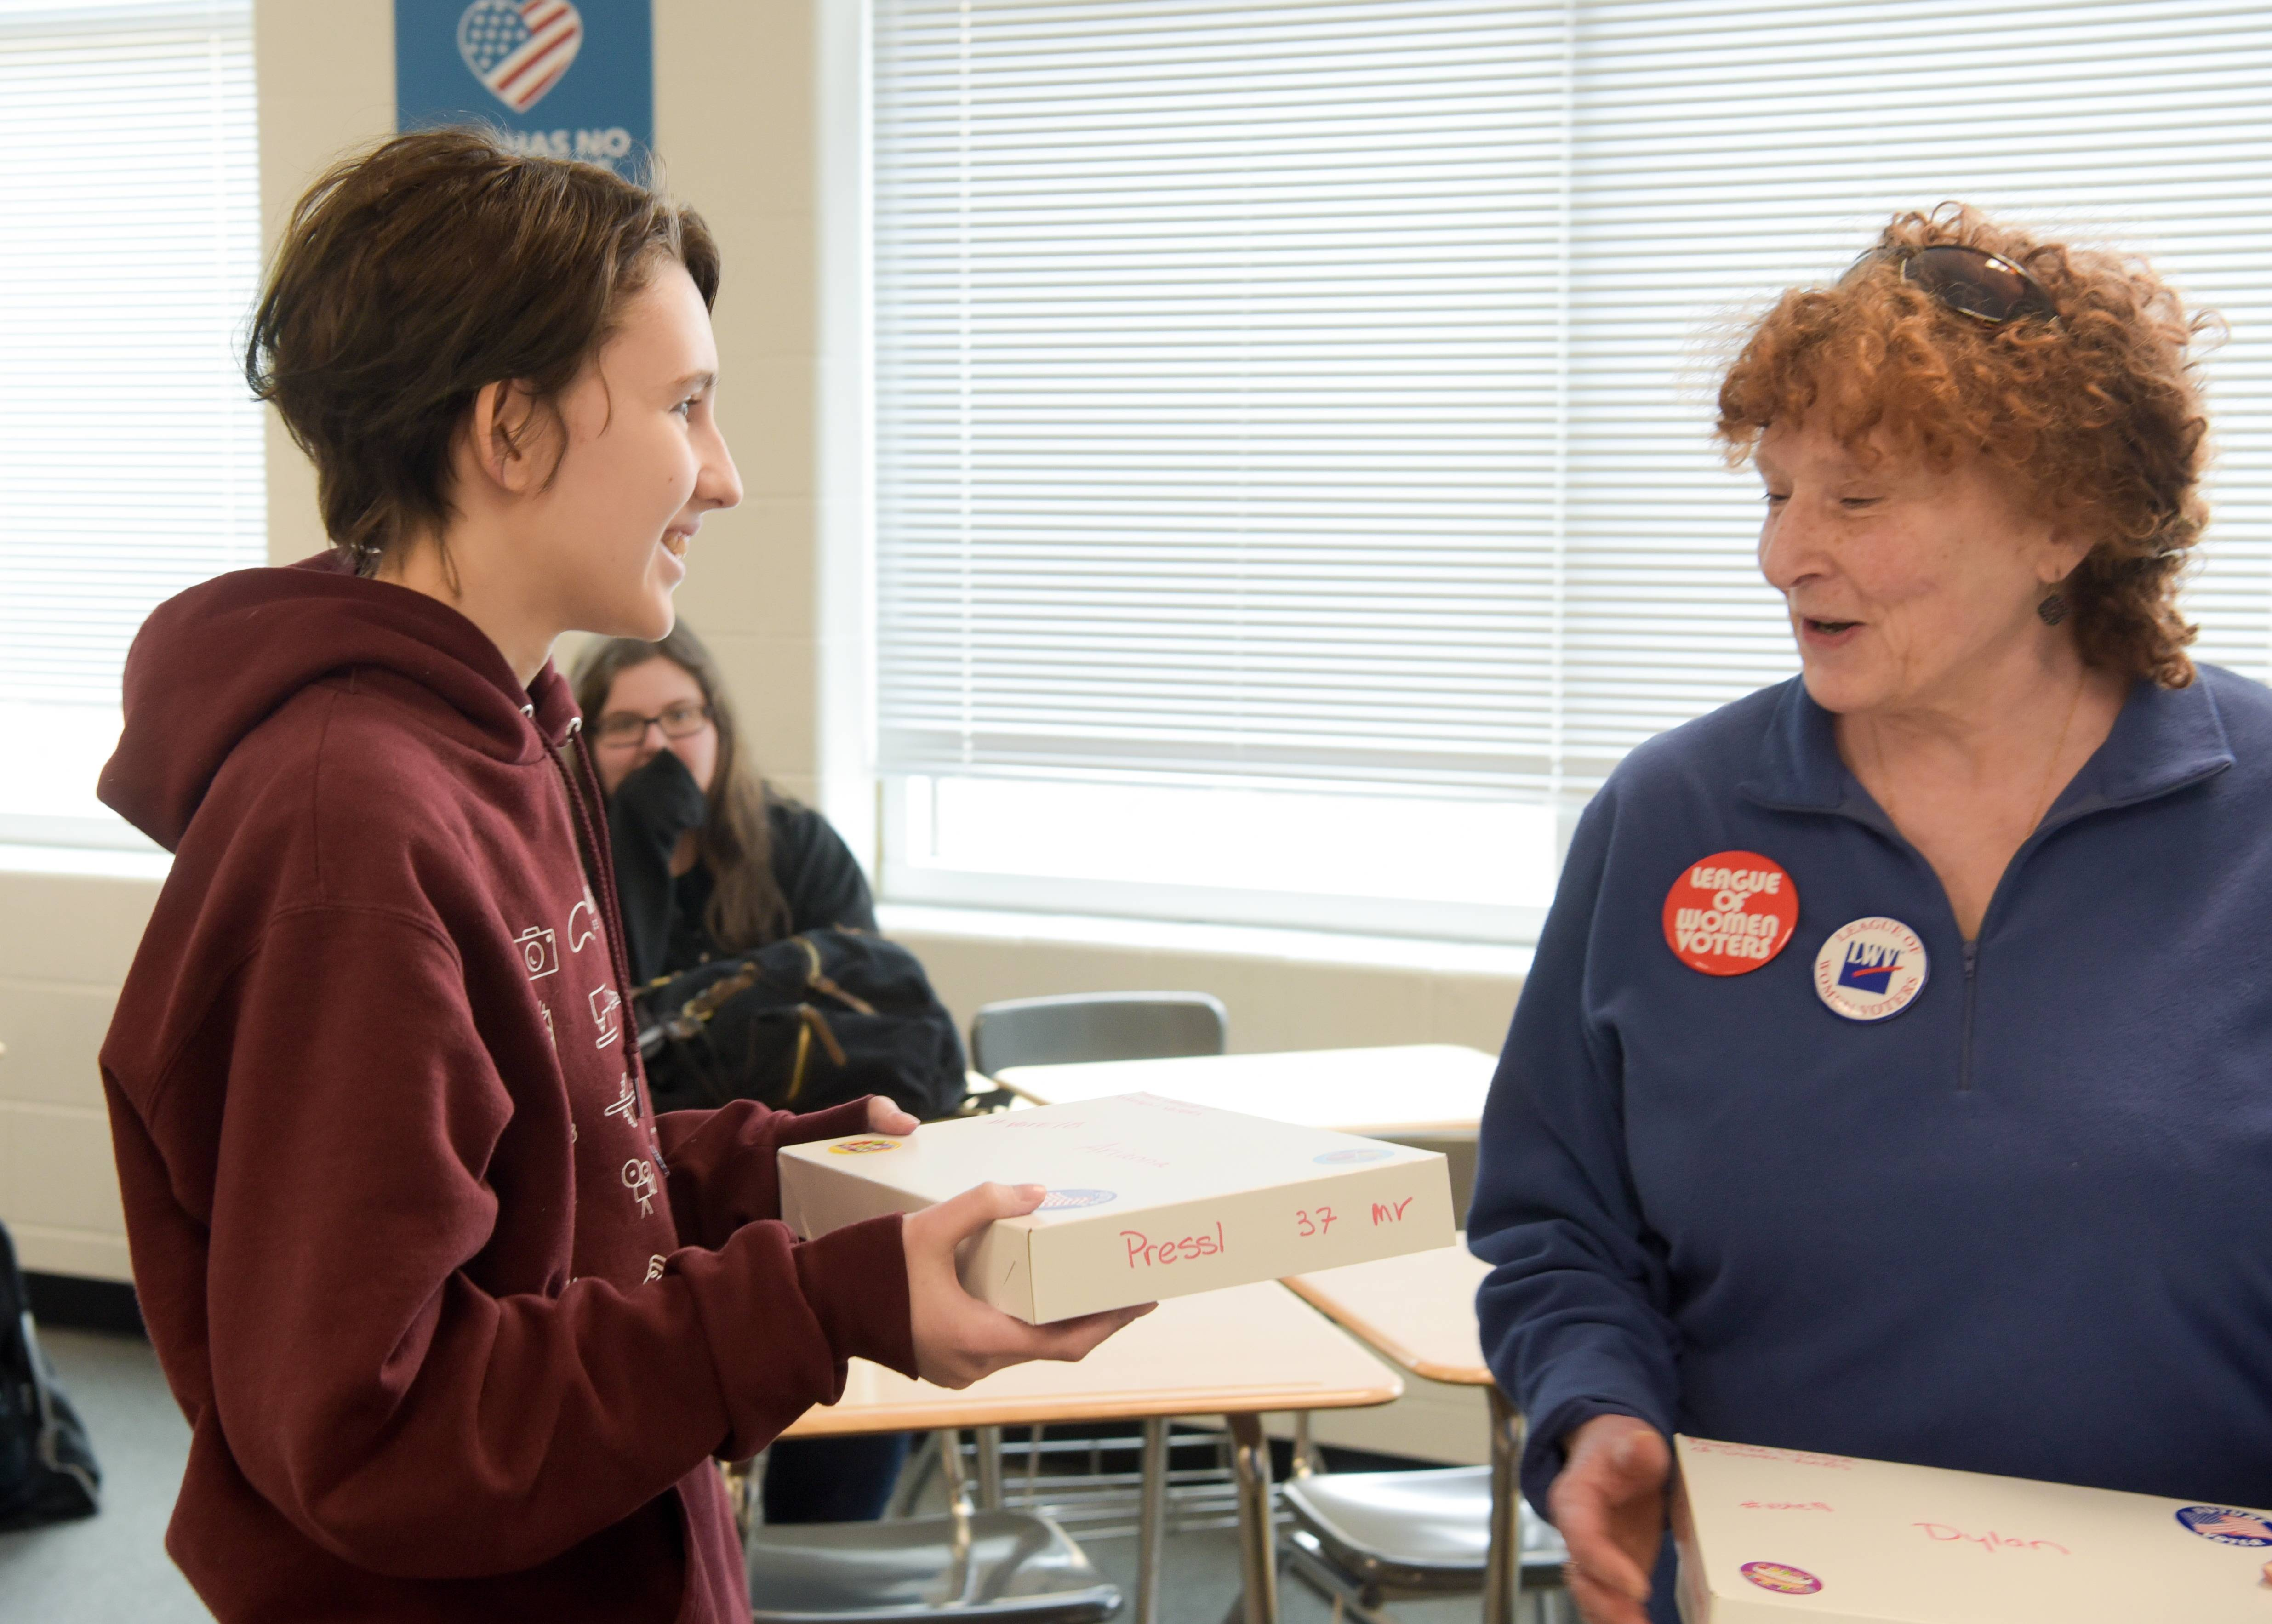 Metea Valley High School student Arianna Presso, 18, of Naperville, talks with Susan Greenwood of the League of Women Voters of Naperville as Greenwood gives her a Birthday Box of nonpartisan voter information.